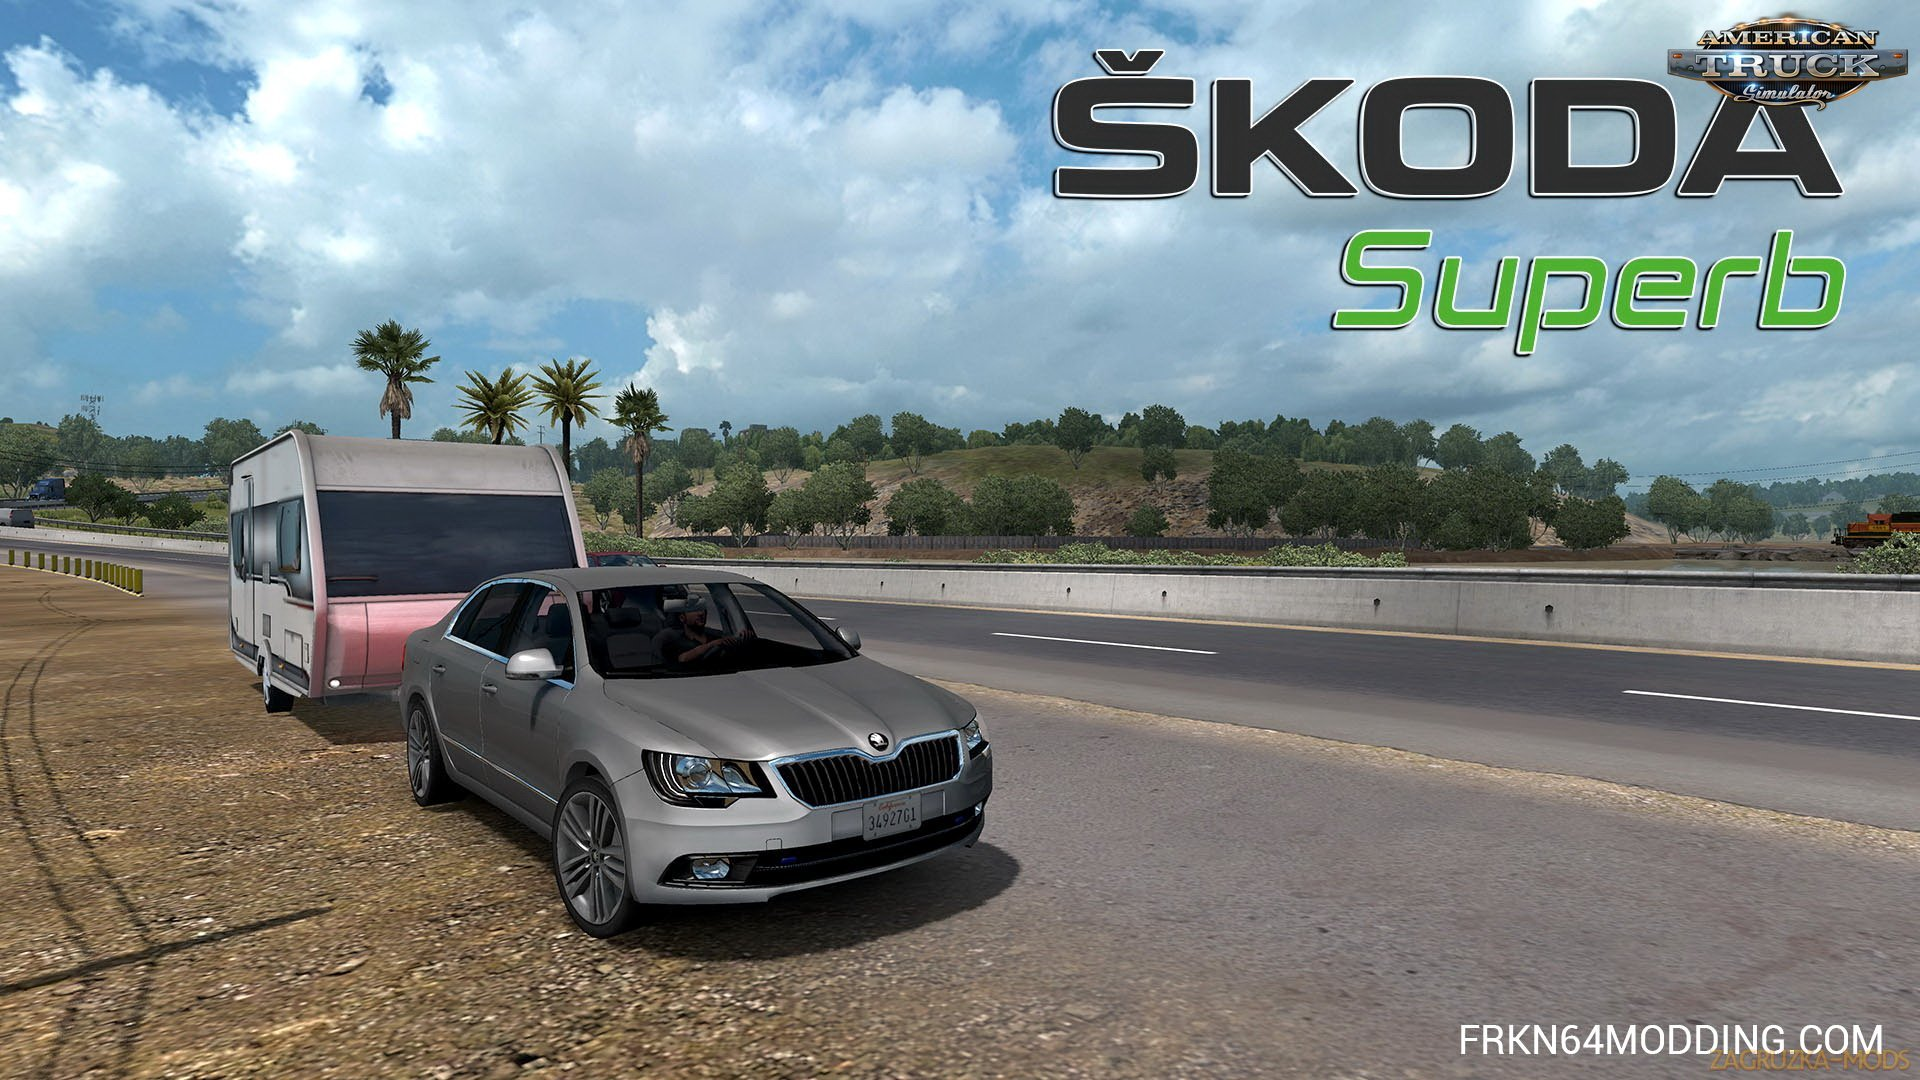 Skoda Superb 2014 + Interior v3.4 by Frkn64 (1.33.x) for ATS